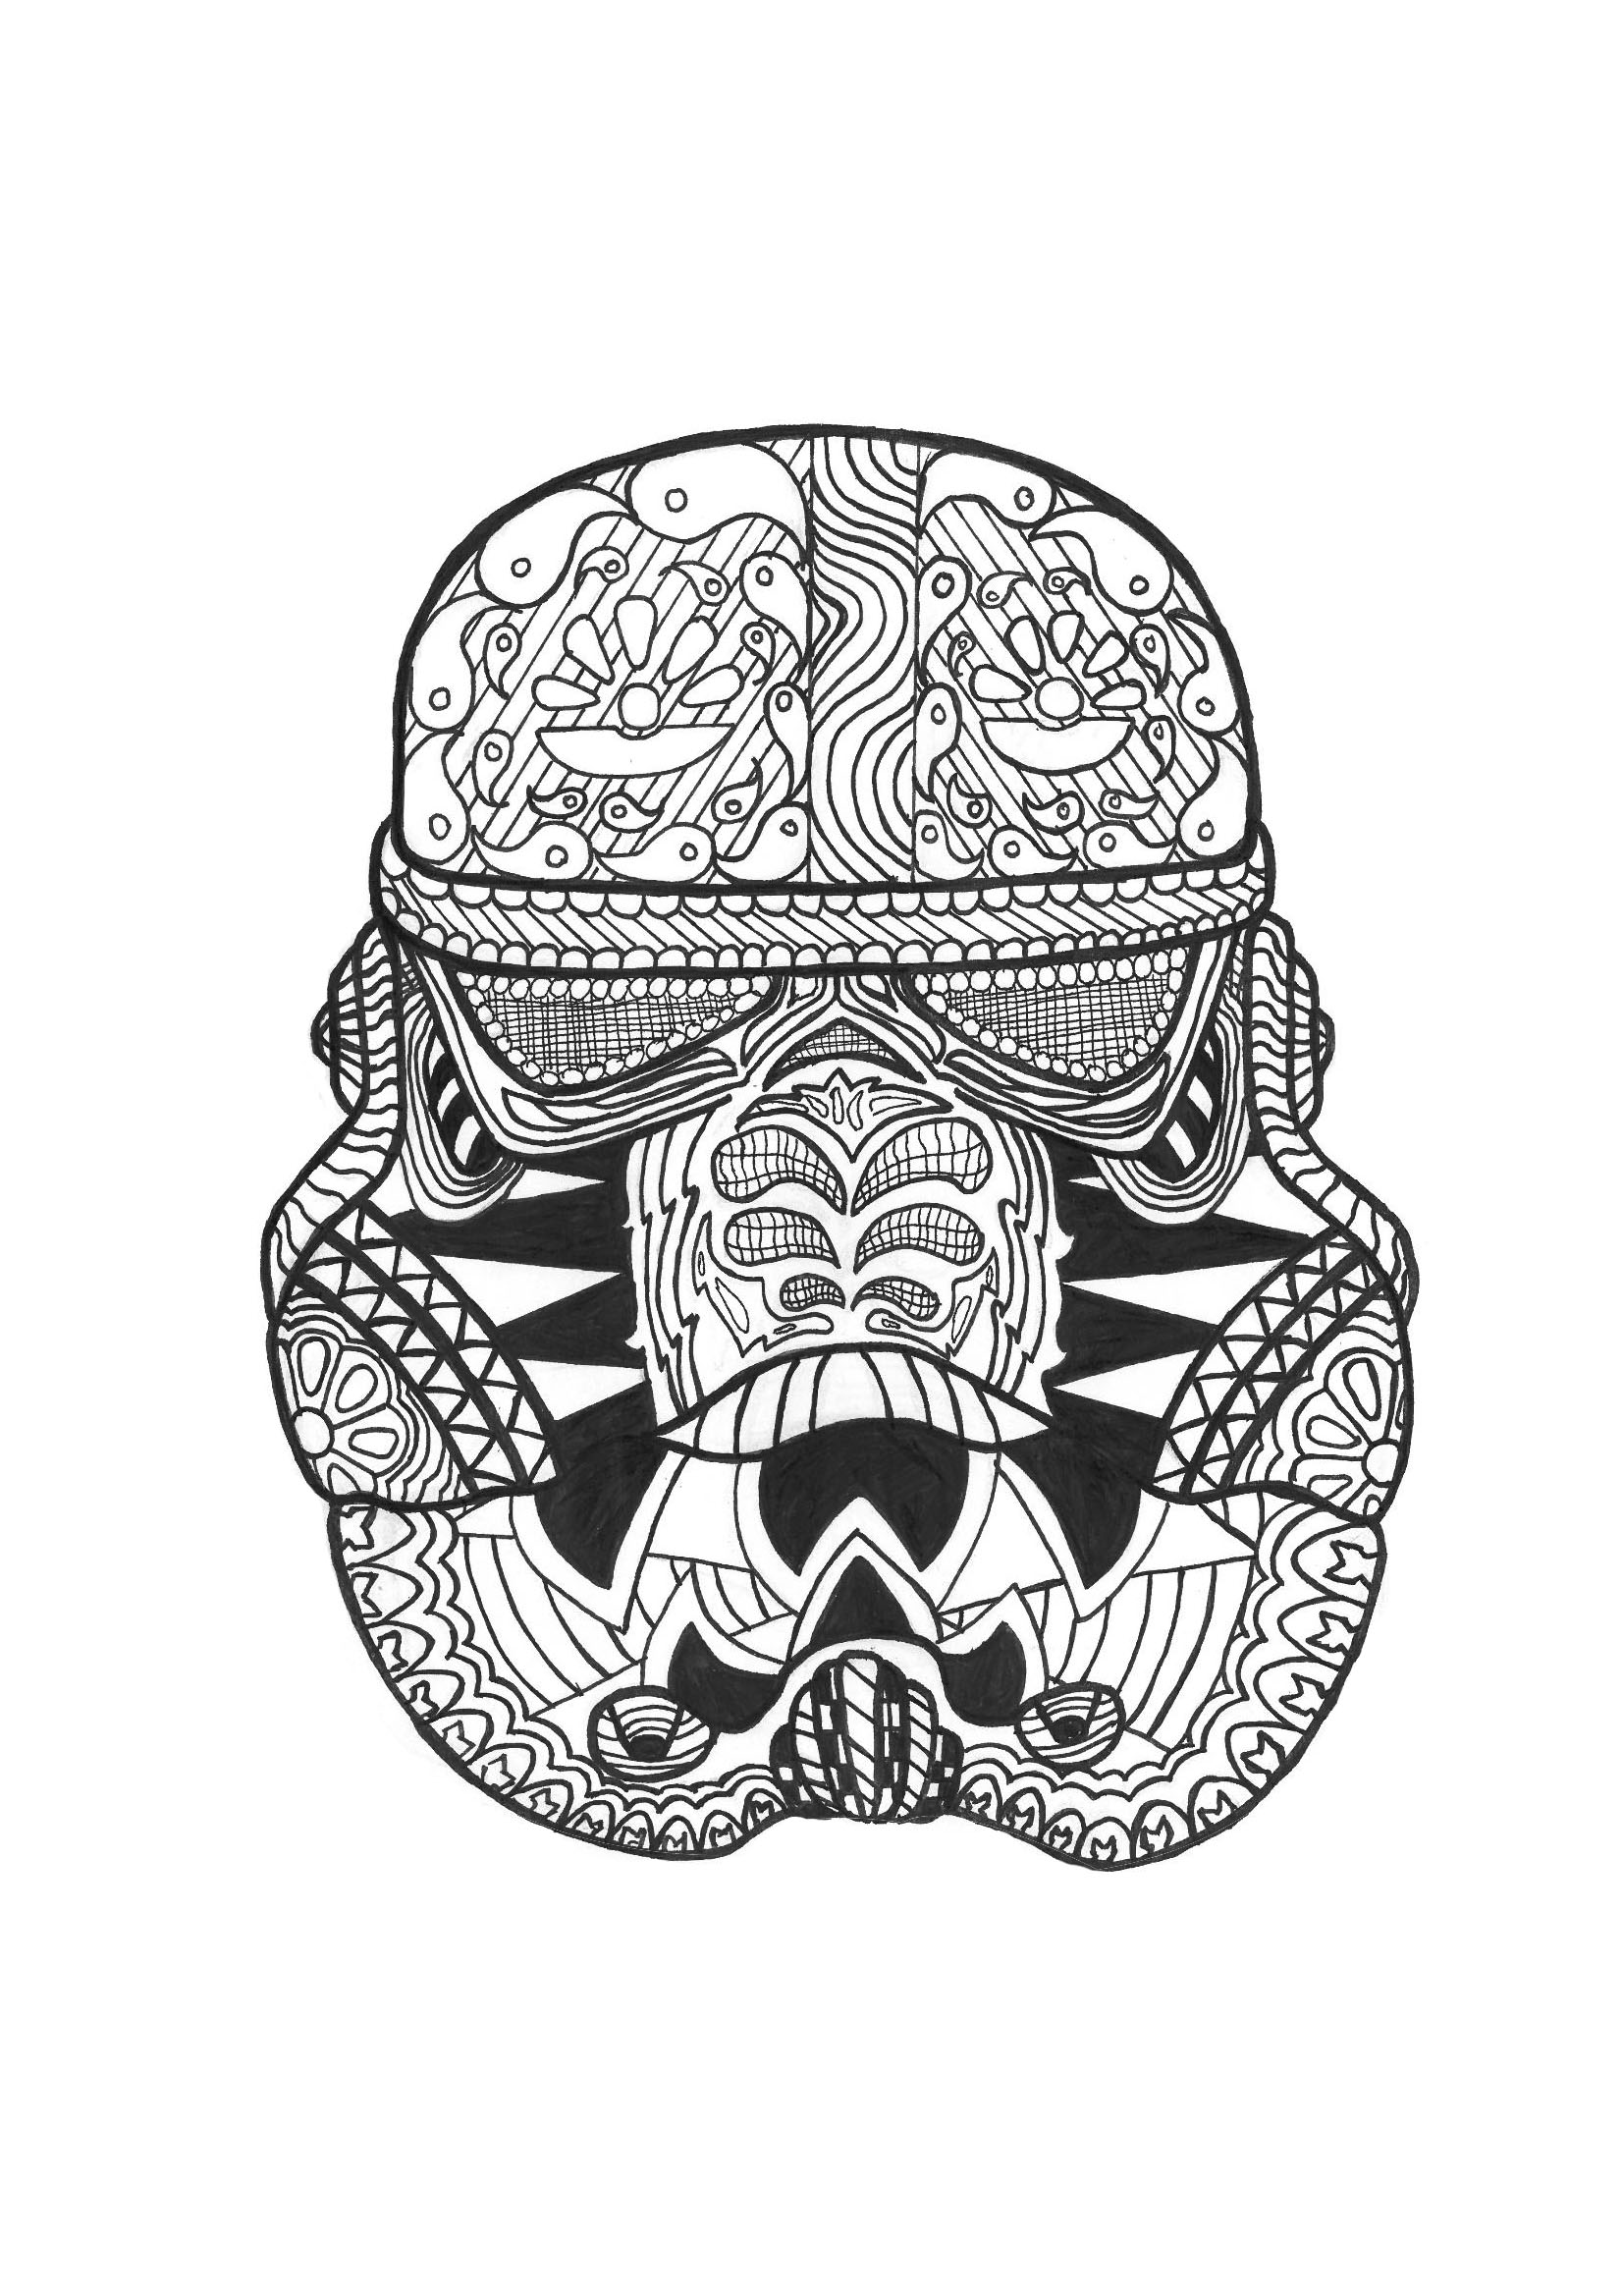 Zen stormtrooper anti stress adult coloring pages Zen coloring book for adults download